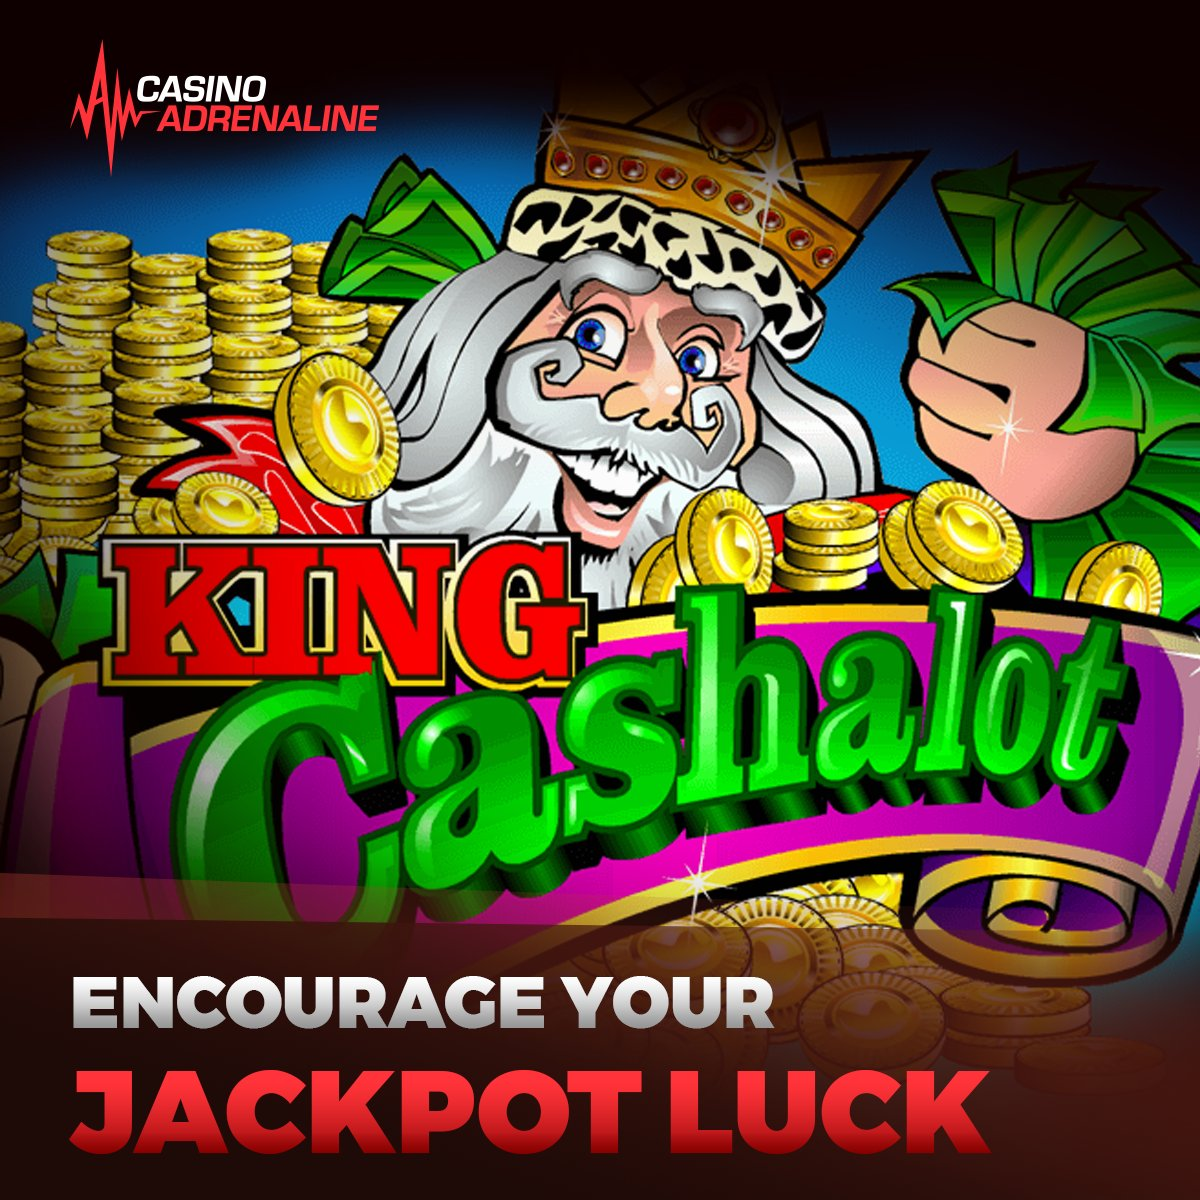 test Twitter Media - Encourage your Jackpot luck by playing King Cashalot! 😁😎 #CasinoAdrenaline #enjoythegame #jackpotluck Play now: https://t.co/I9uyawMrUo https://t.co/ho34N1wRxD